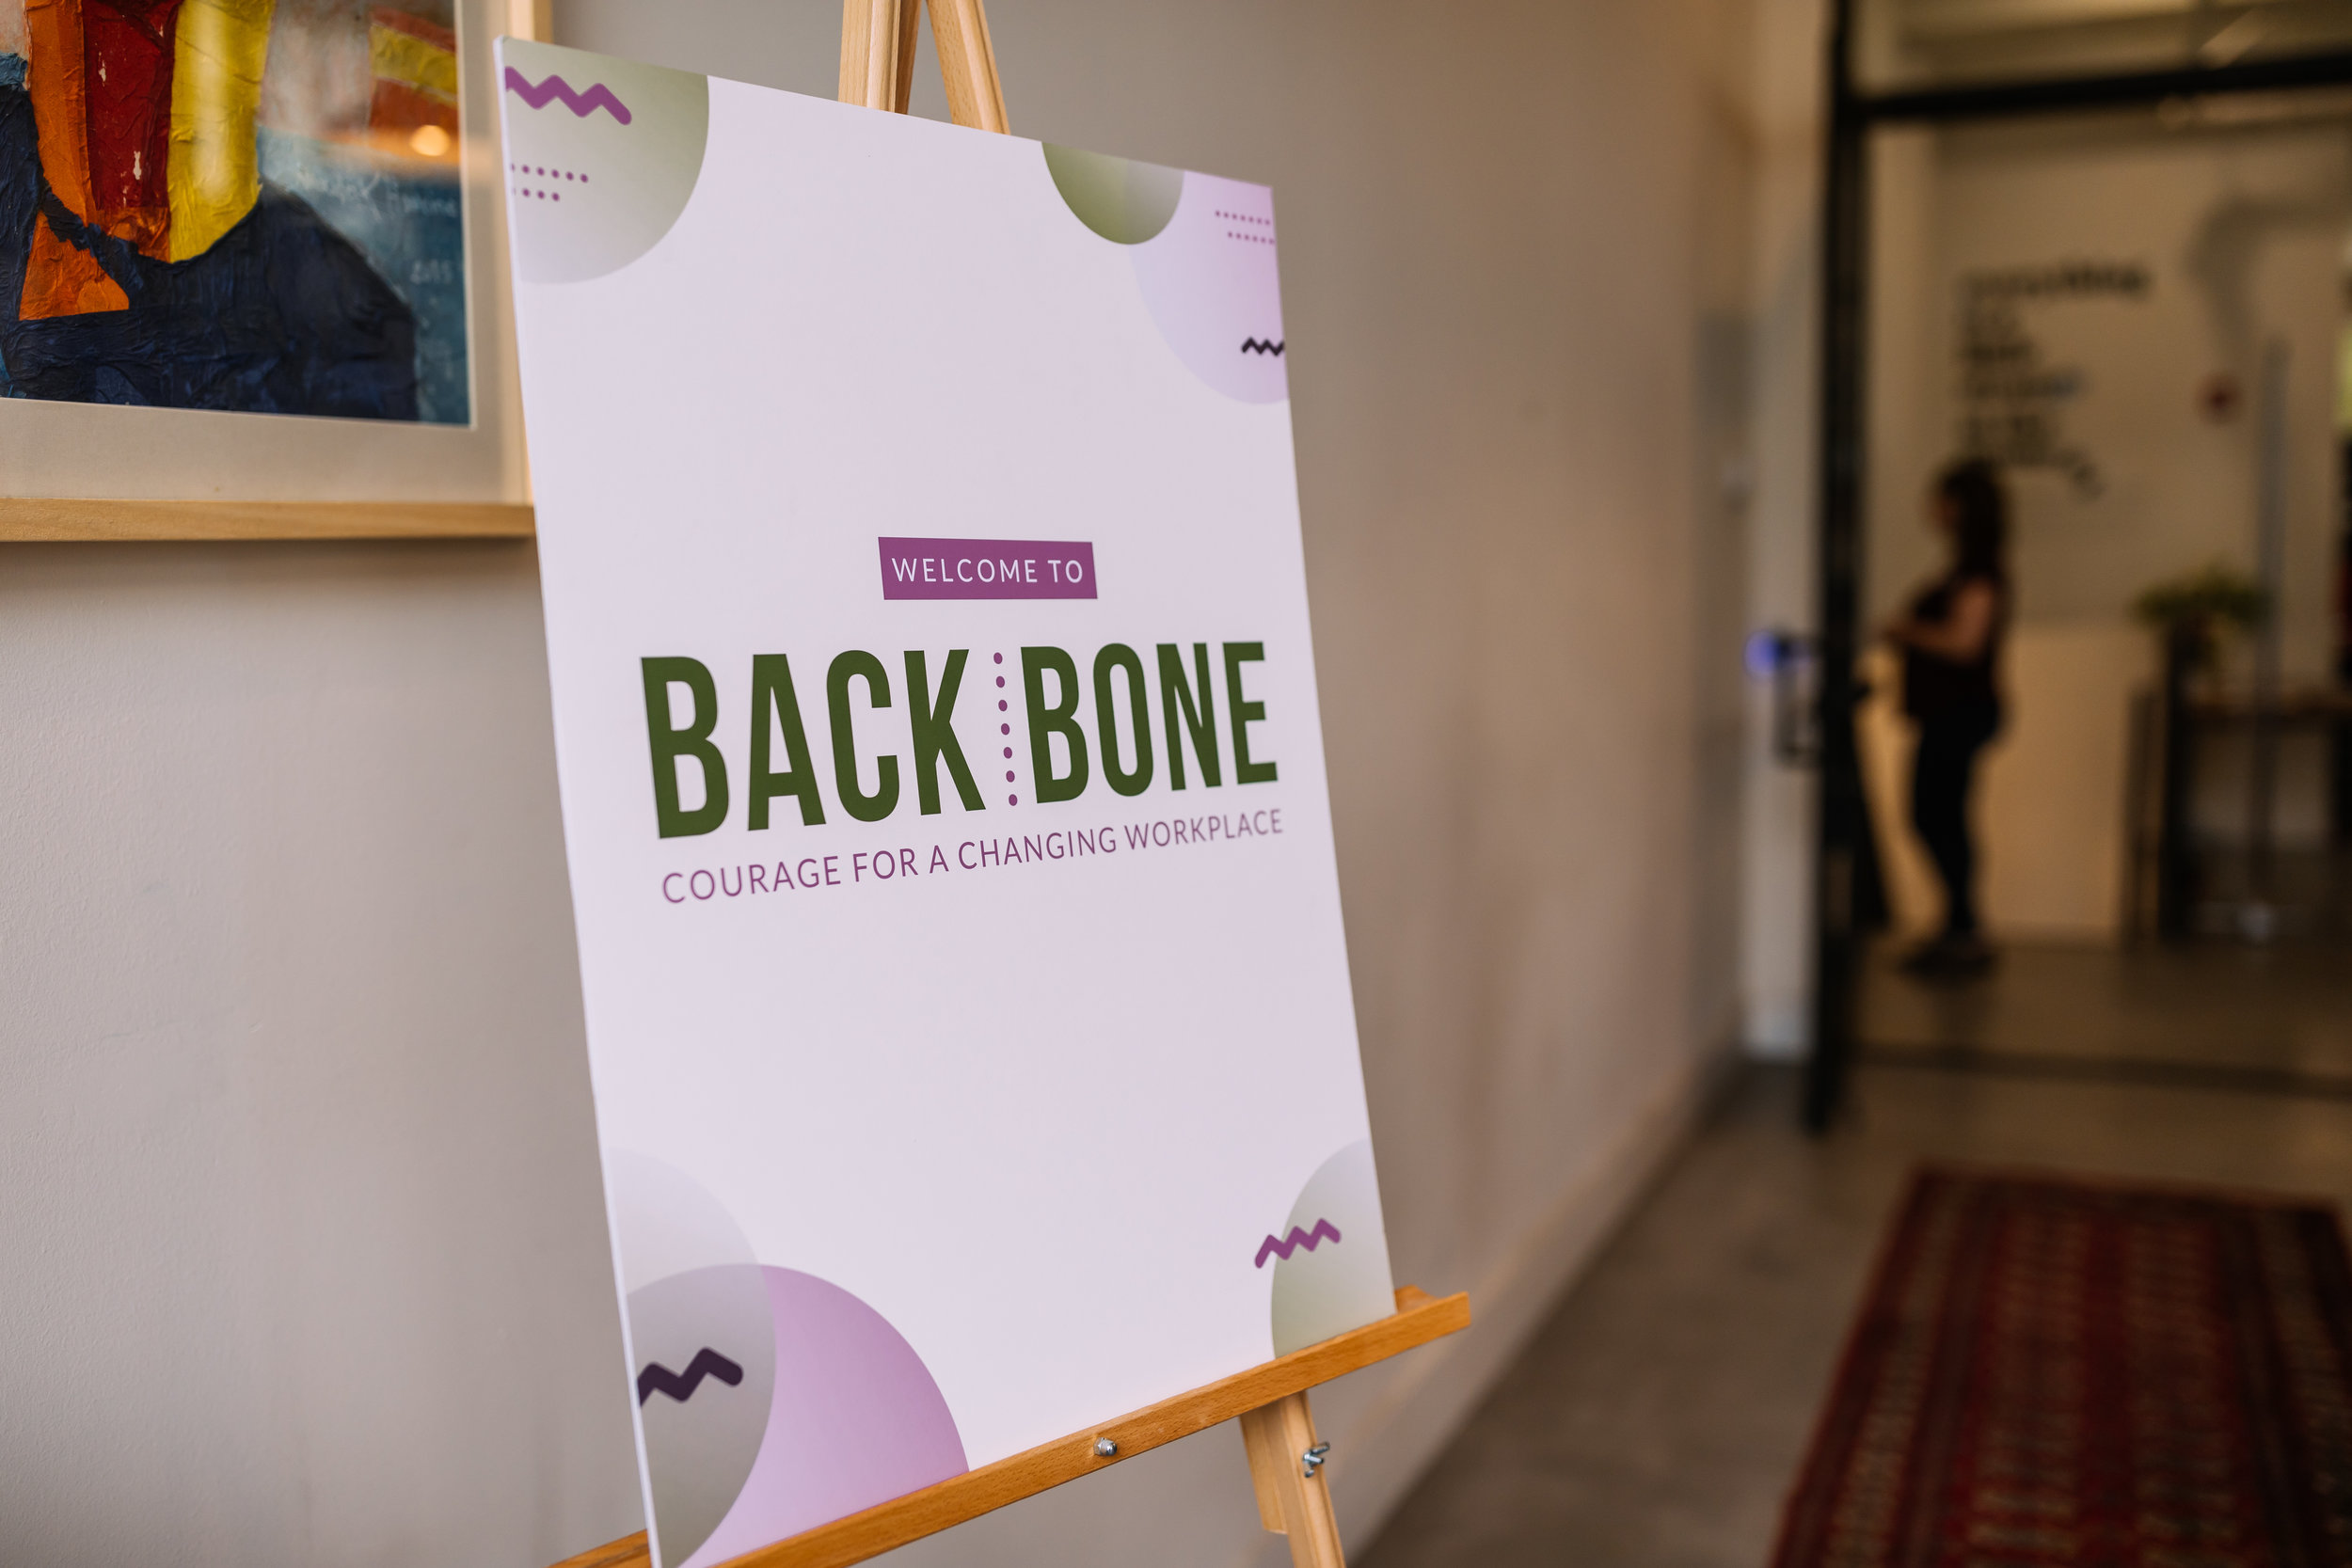 For Backbone: Courage for a Changing Workplace, we created consistency by using the visual identity and brand colors across all materials.